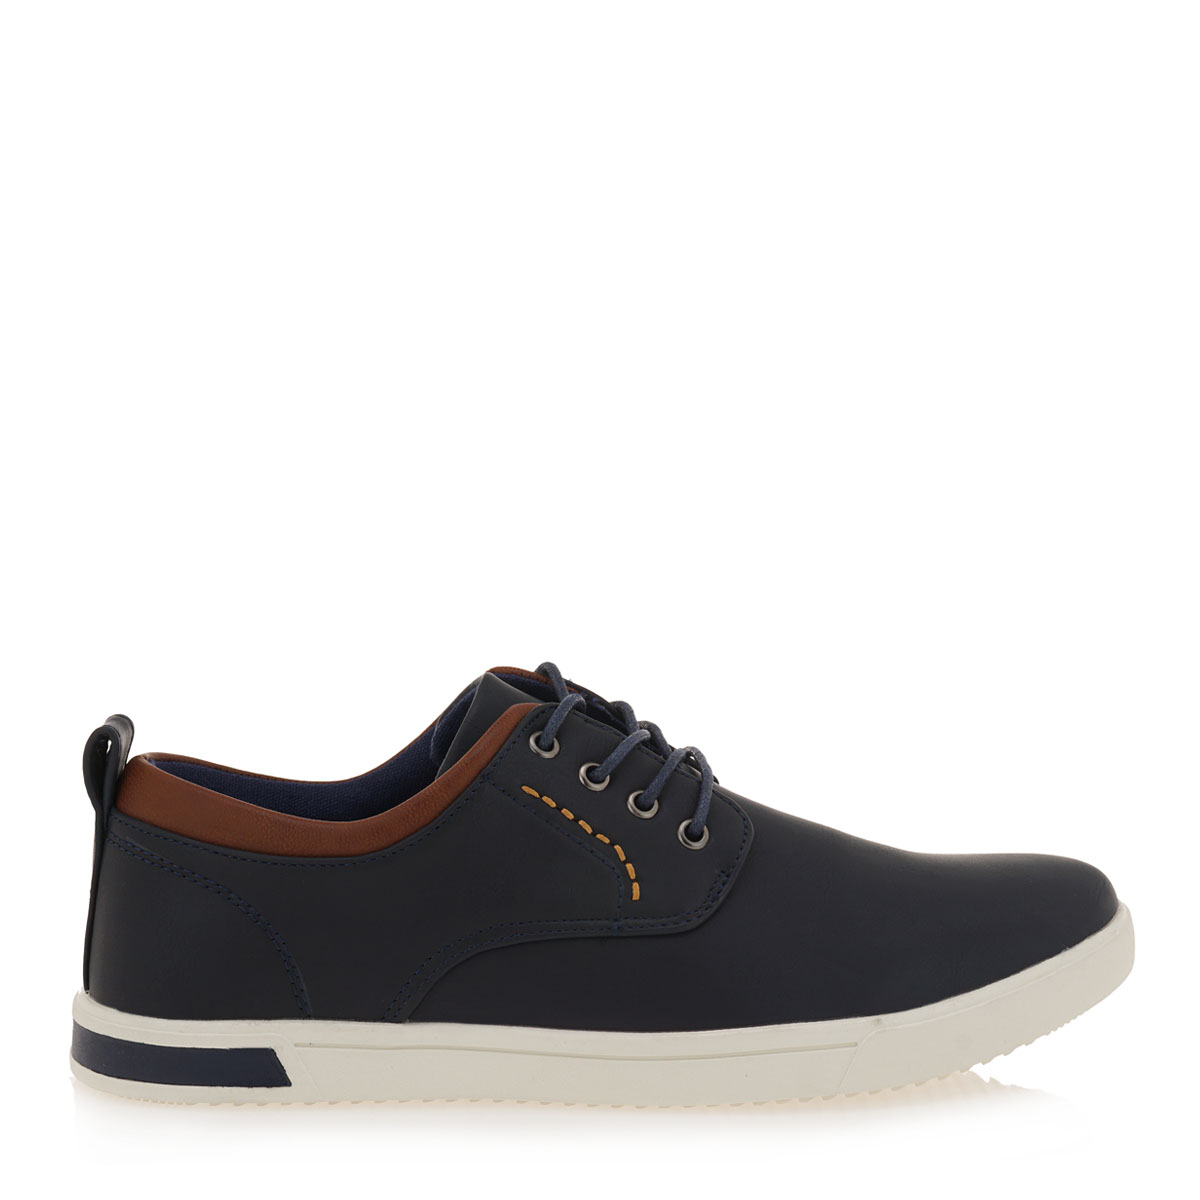 LACE-UP SHOES σχέδιο: I57002191 outlet   ανδρικα   lace up shoes